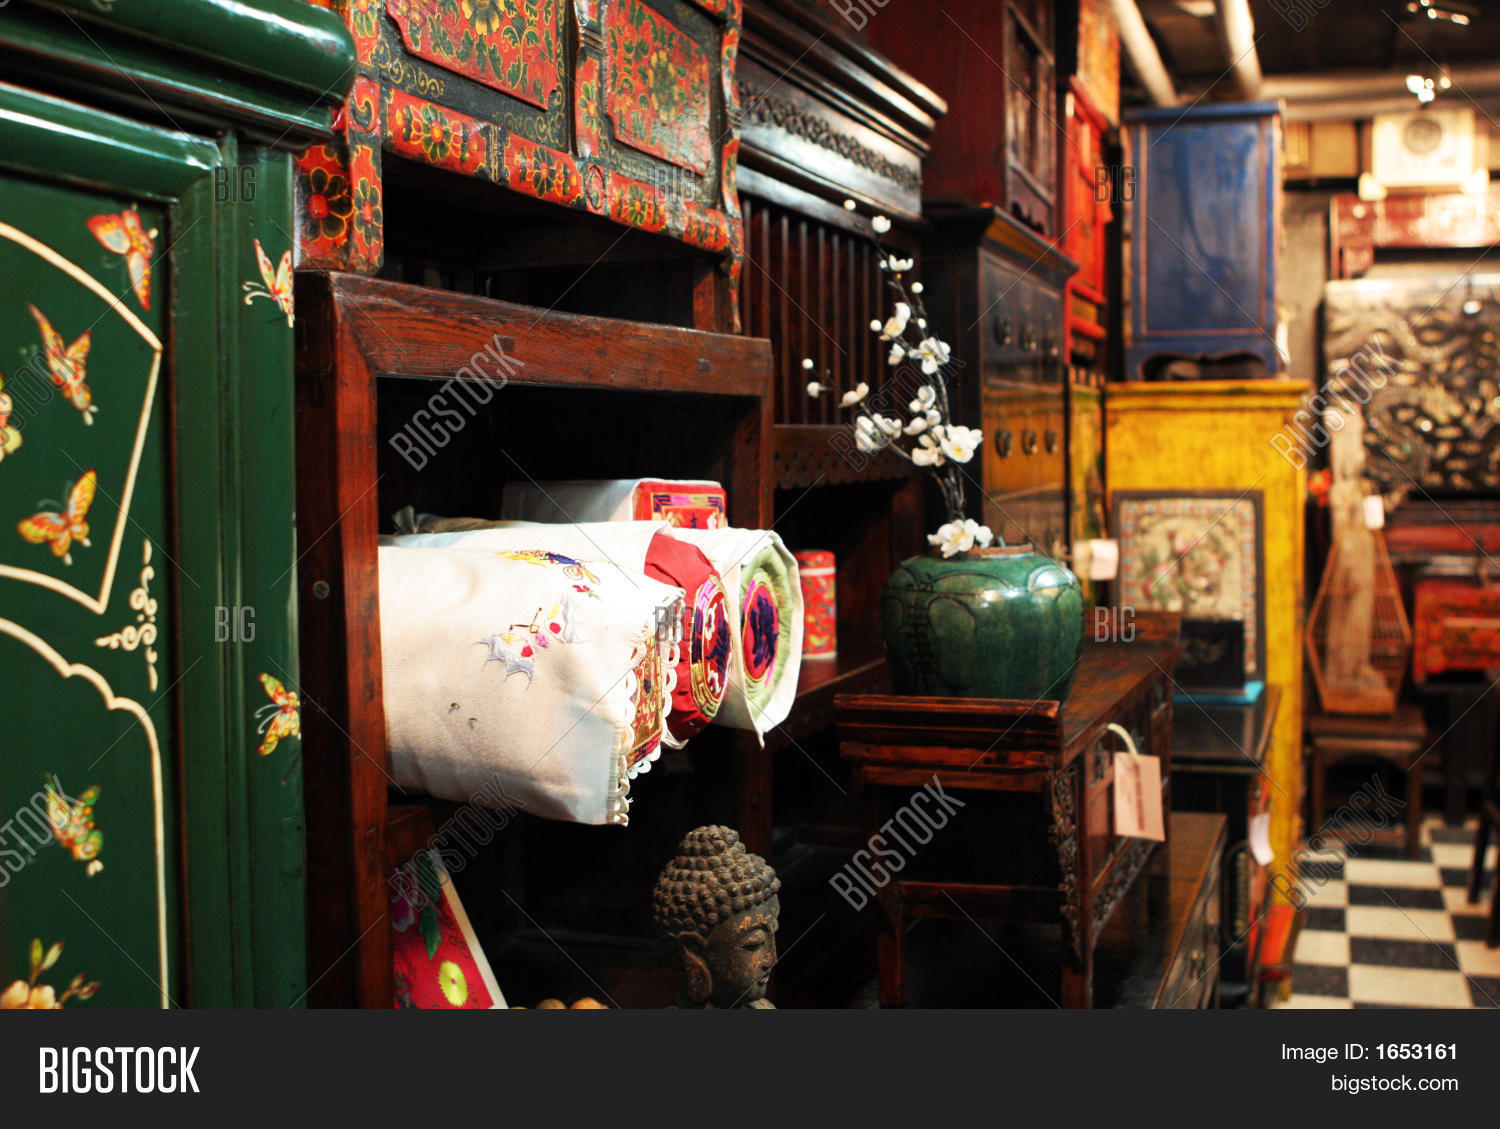 Asian Antique Furniture Store Stock Photo Stock Images Bigstock